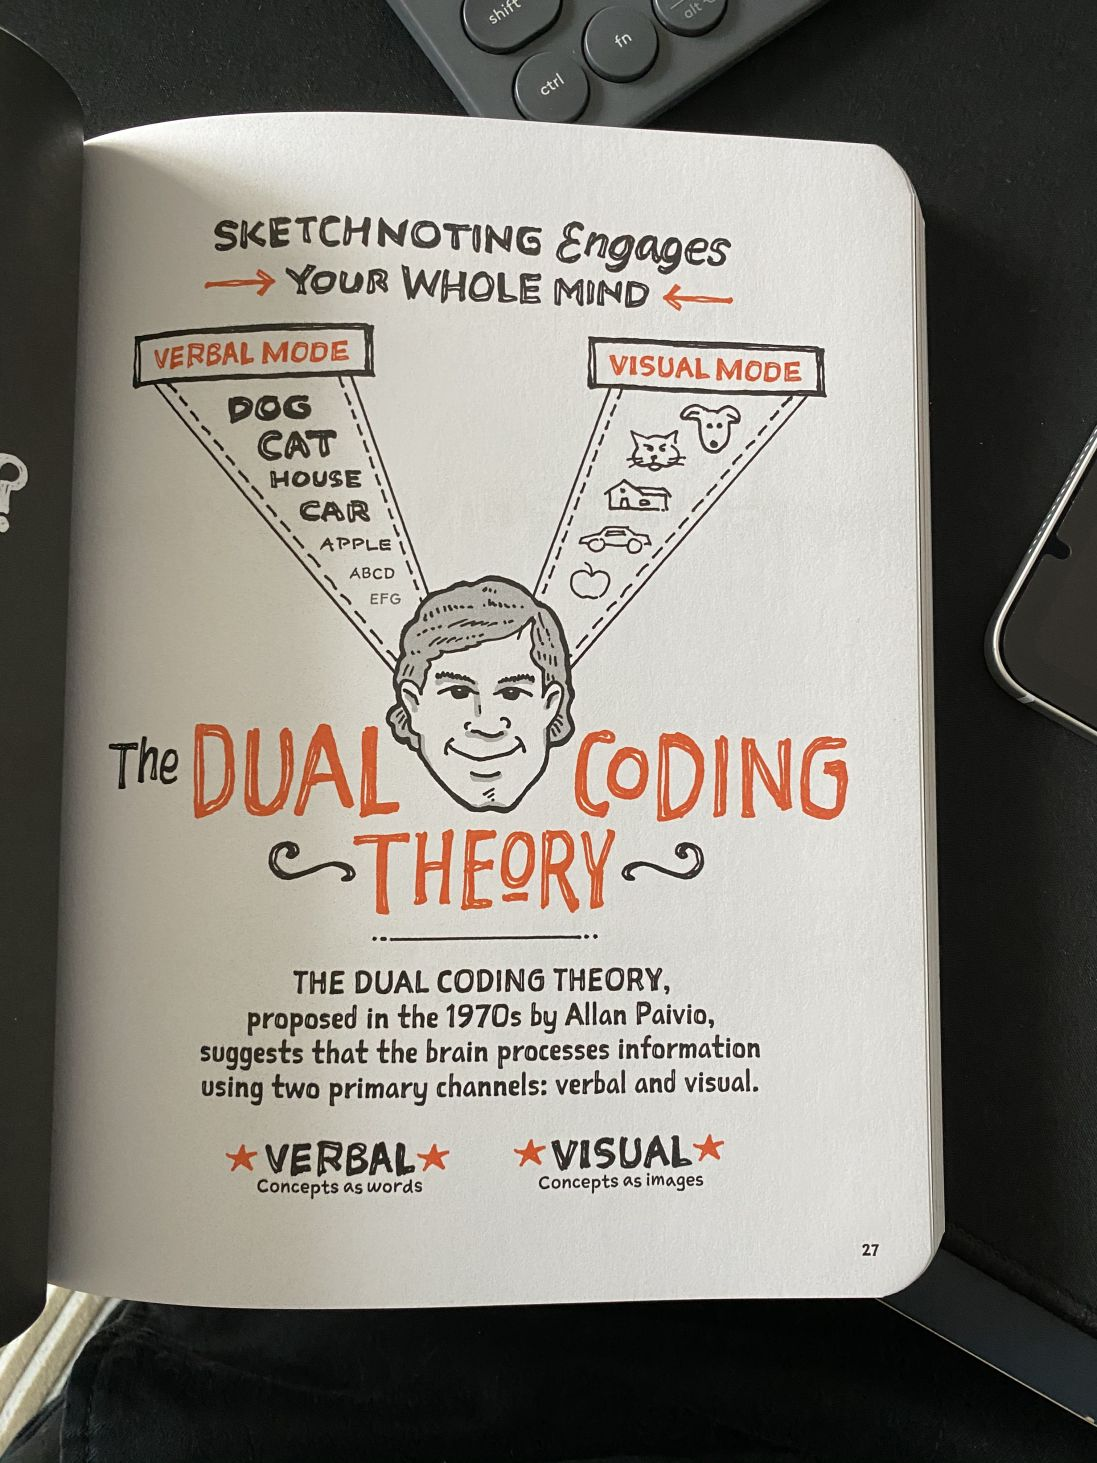 Page from Sketchnoting book by Mike Rhode